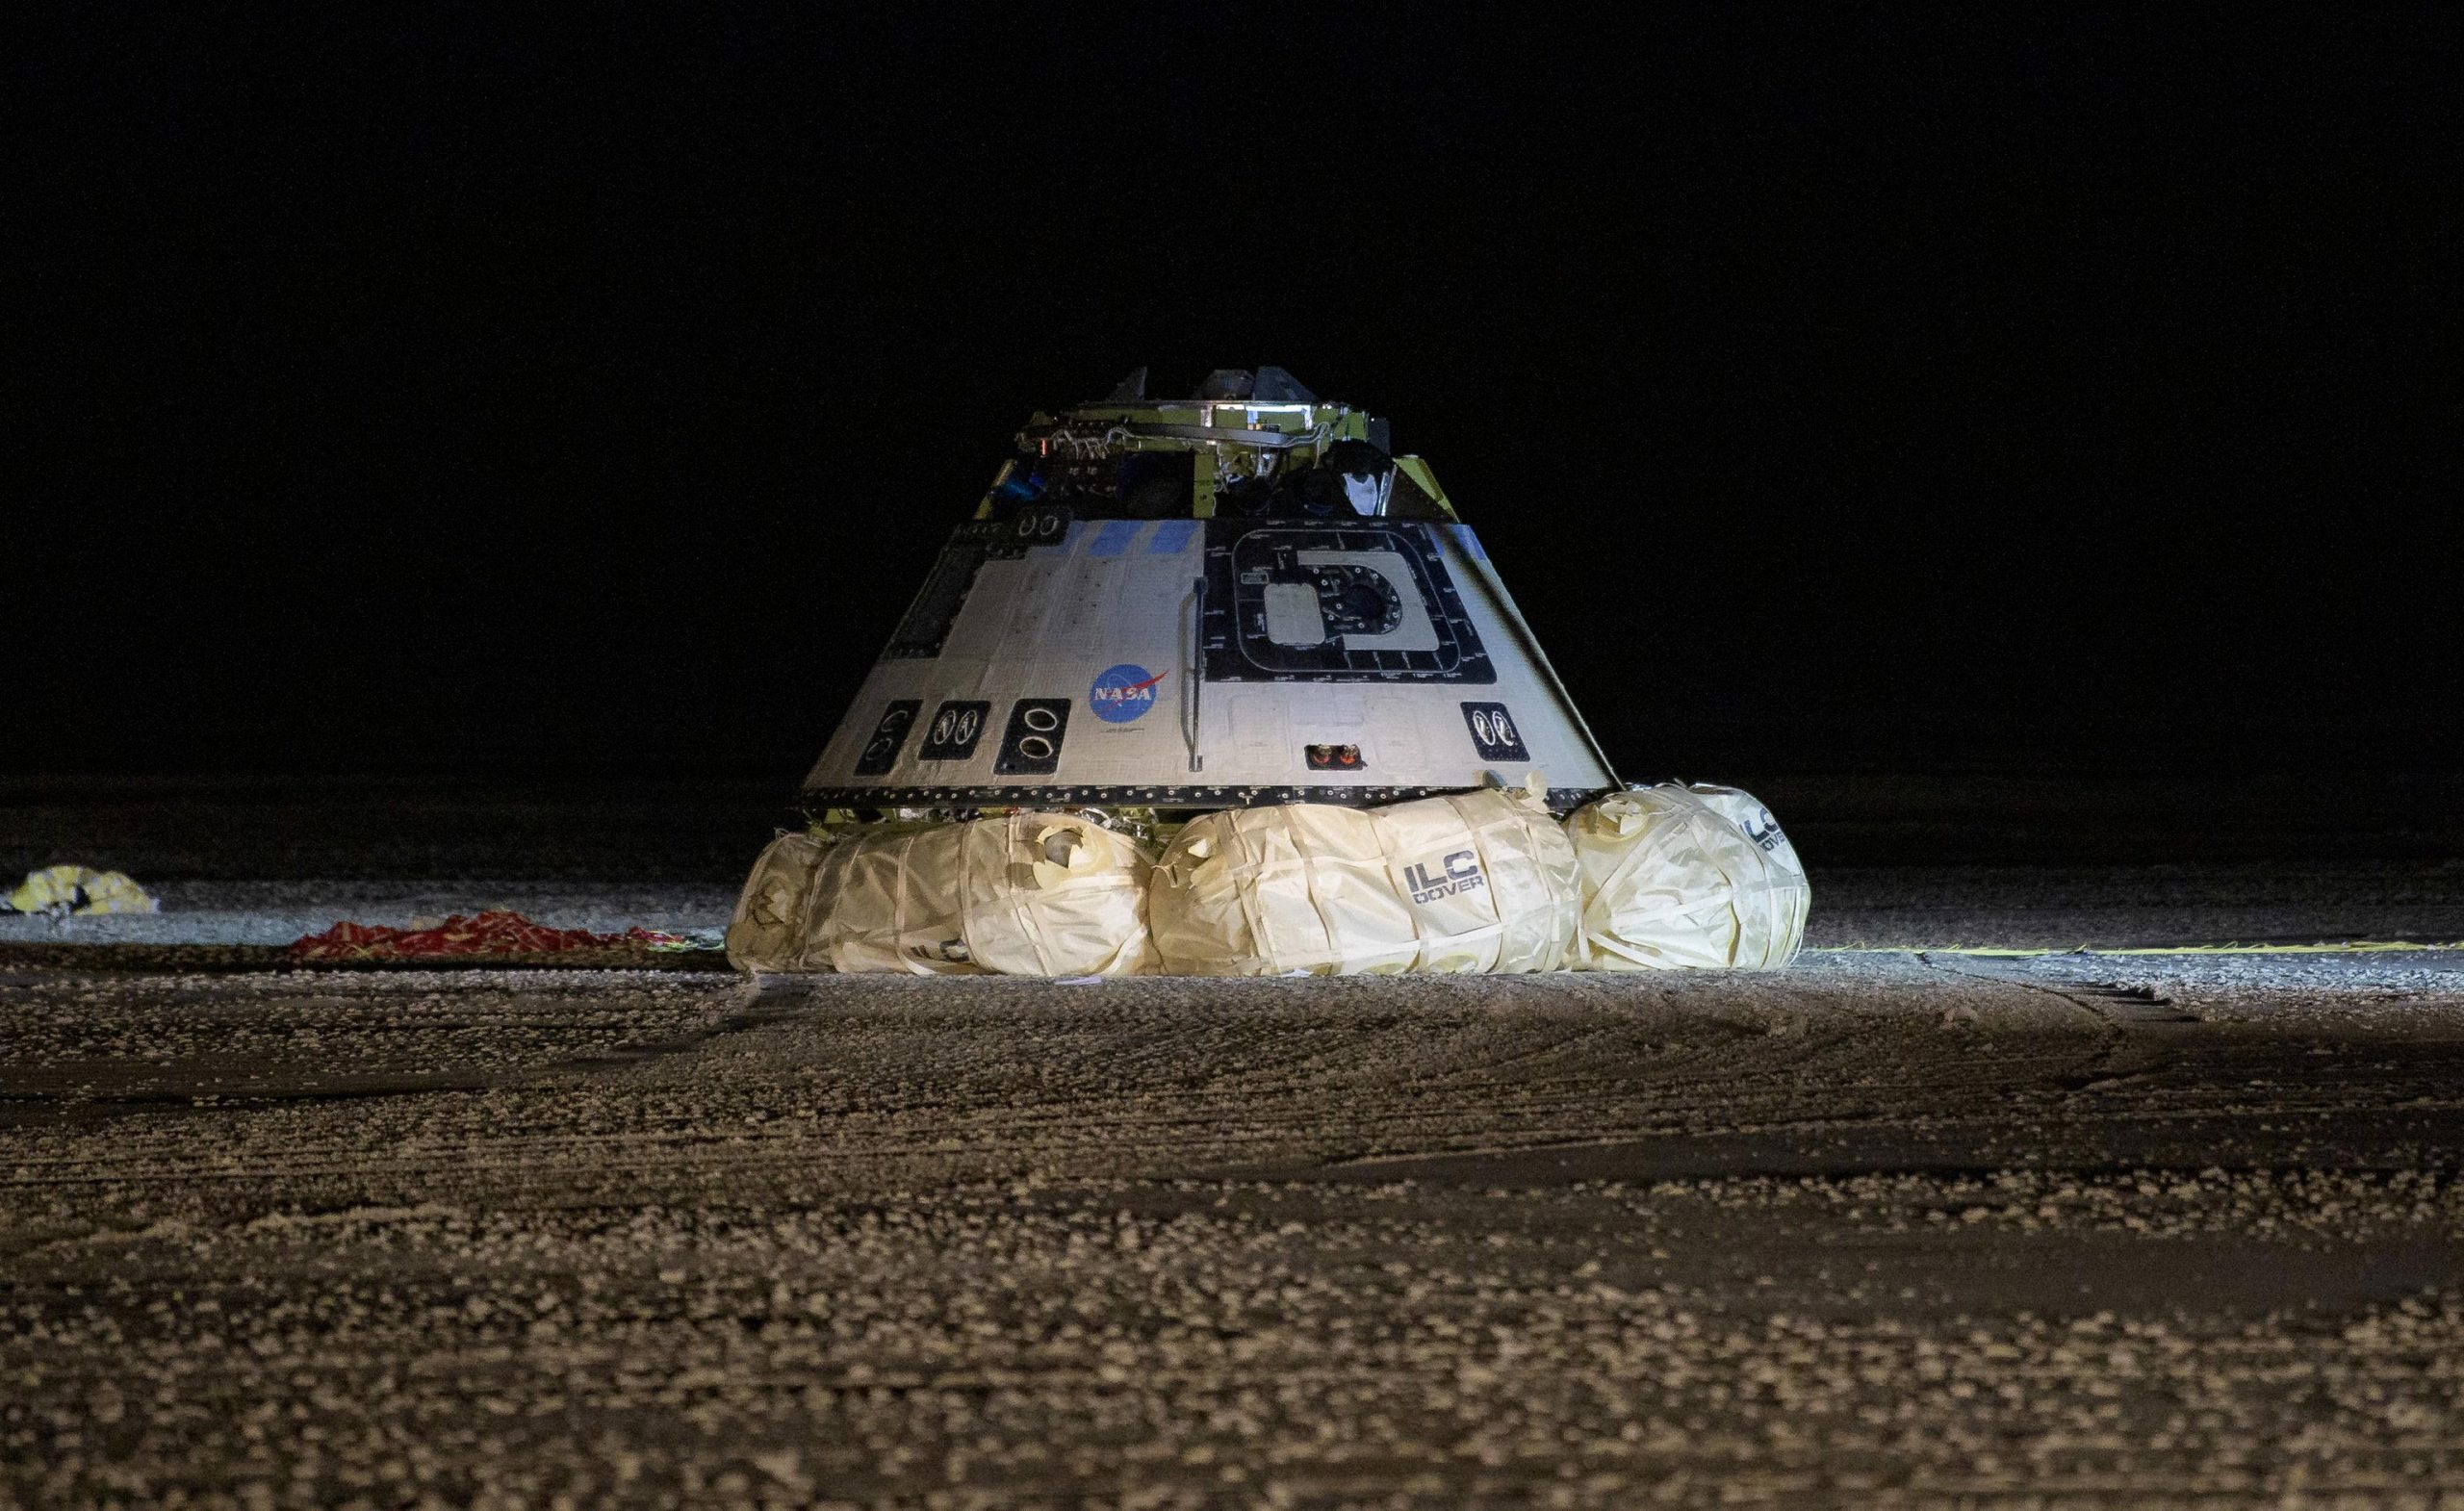 Boeing CST-100 Starliner Returns to Earth With New Name: Calypso - SciTechDaily